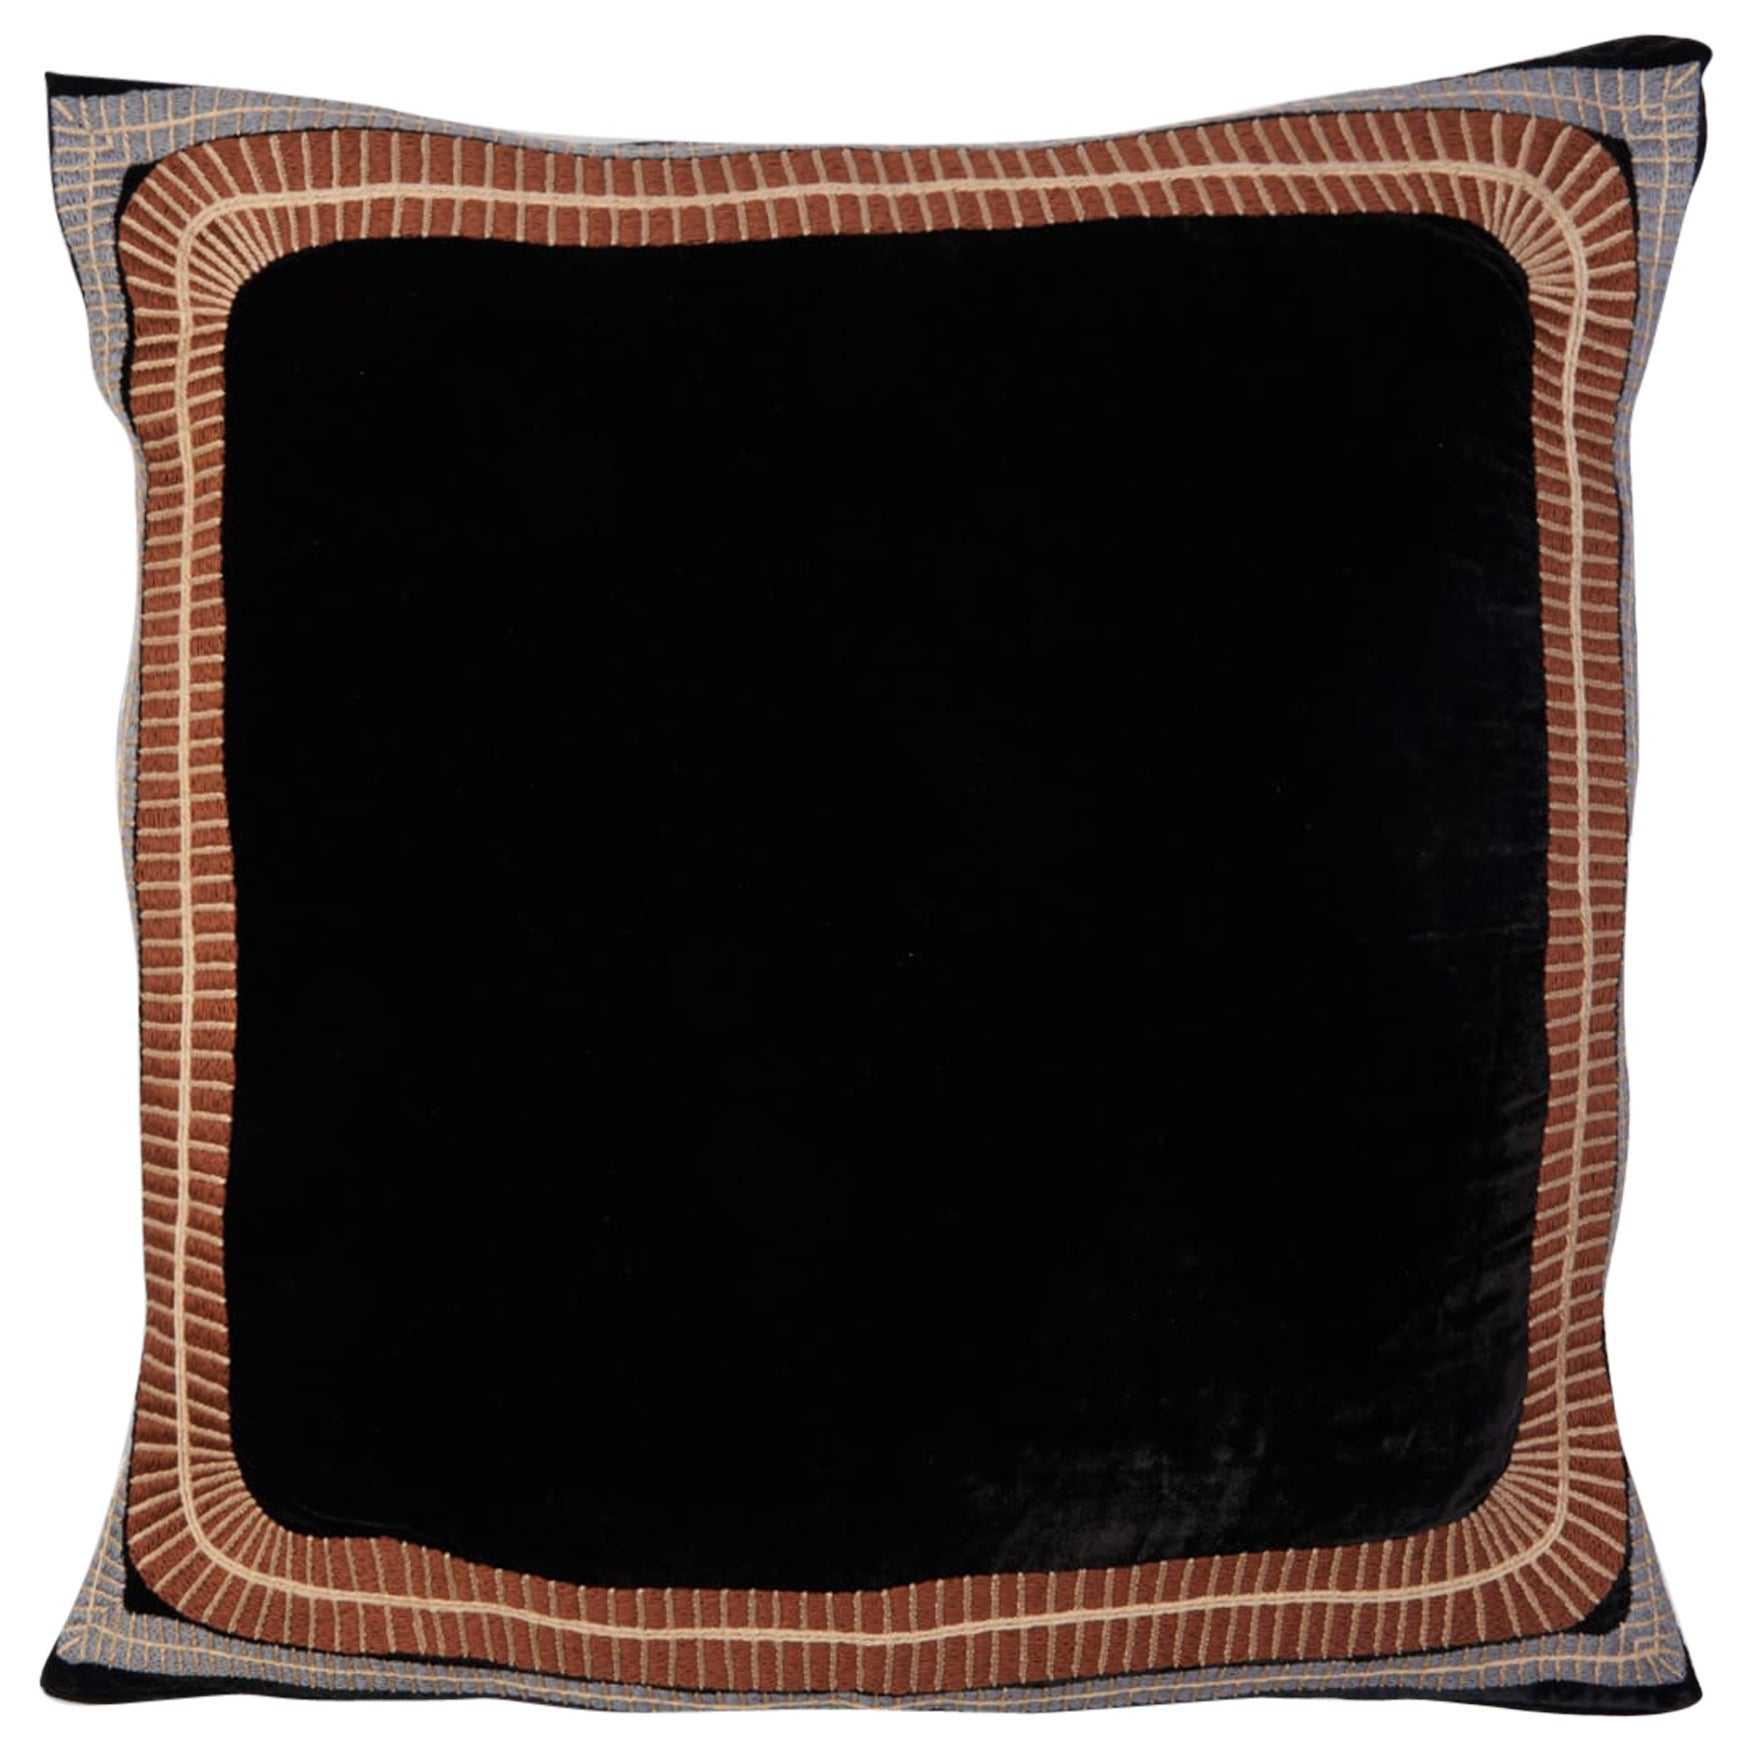 Eksteen Hand Embroidered Black Velvet Pillow Cover